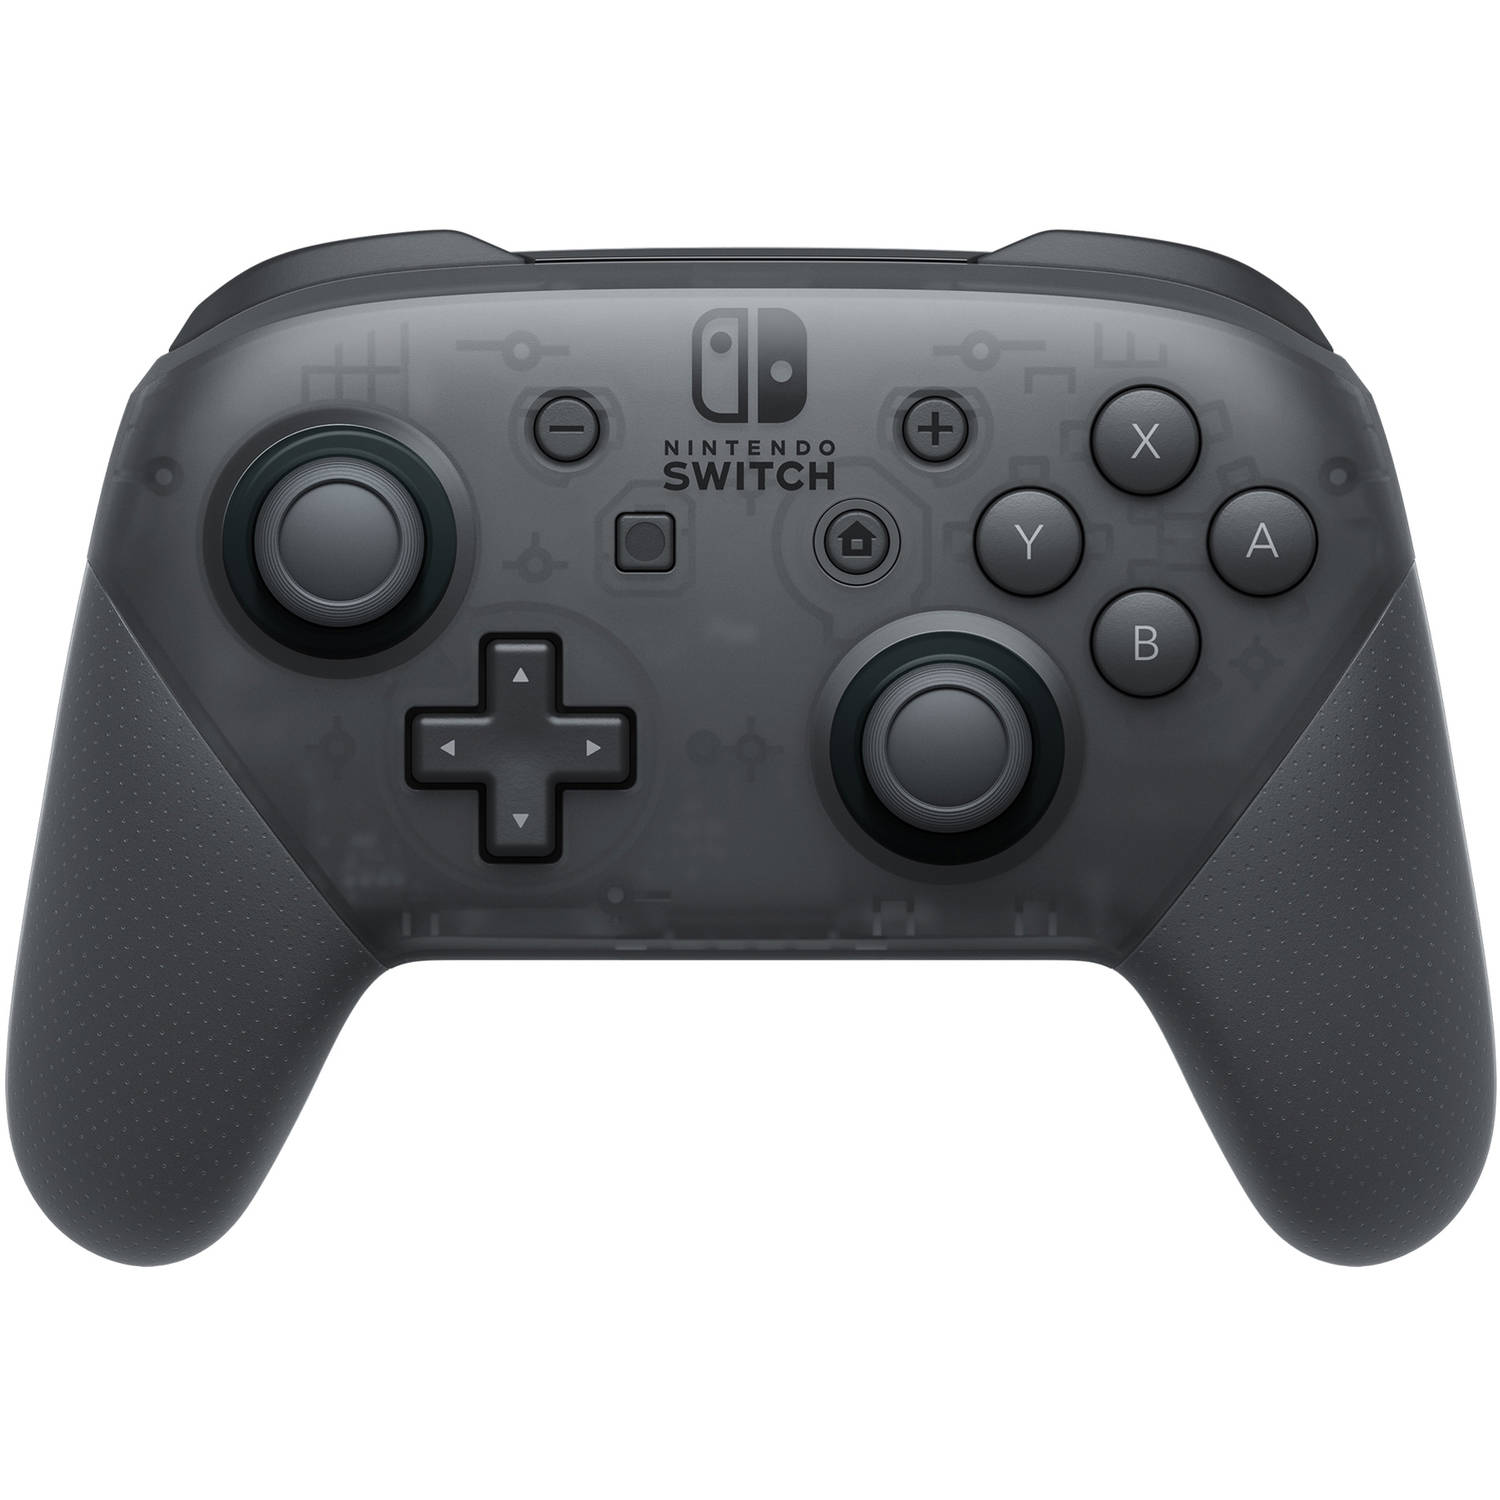 Normally $70,get this Nintendo Switch Pro Controller for $10 off (Photo via Walmart)